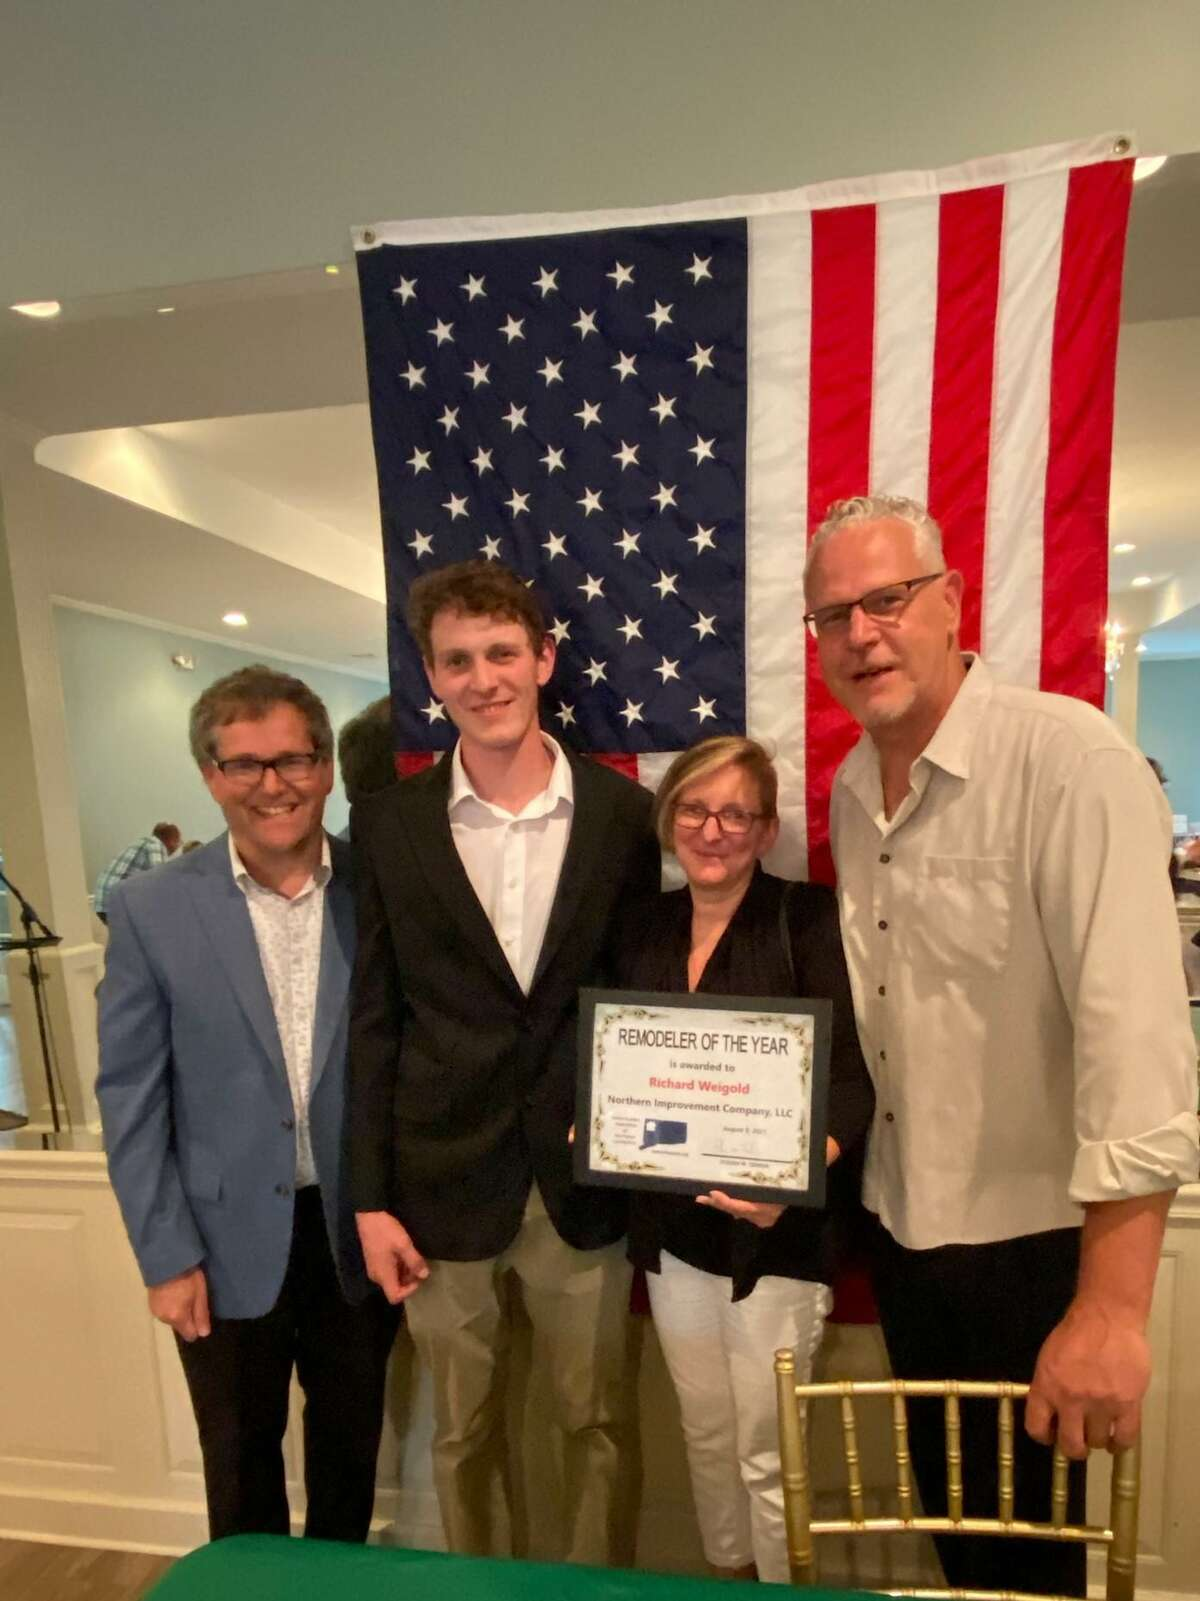 The Home Builder Association of Northwest CT joined the Litchfield County Chapter of the Greater Hartford Association of Realtors to honor Remodeler of the Year Northern Improvement Company of Torrington. From left are Steve Temkin and owners Mason, Cara and Richard Weigold.